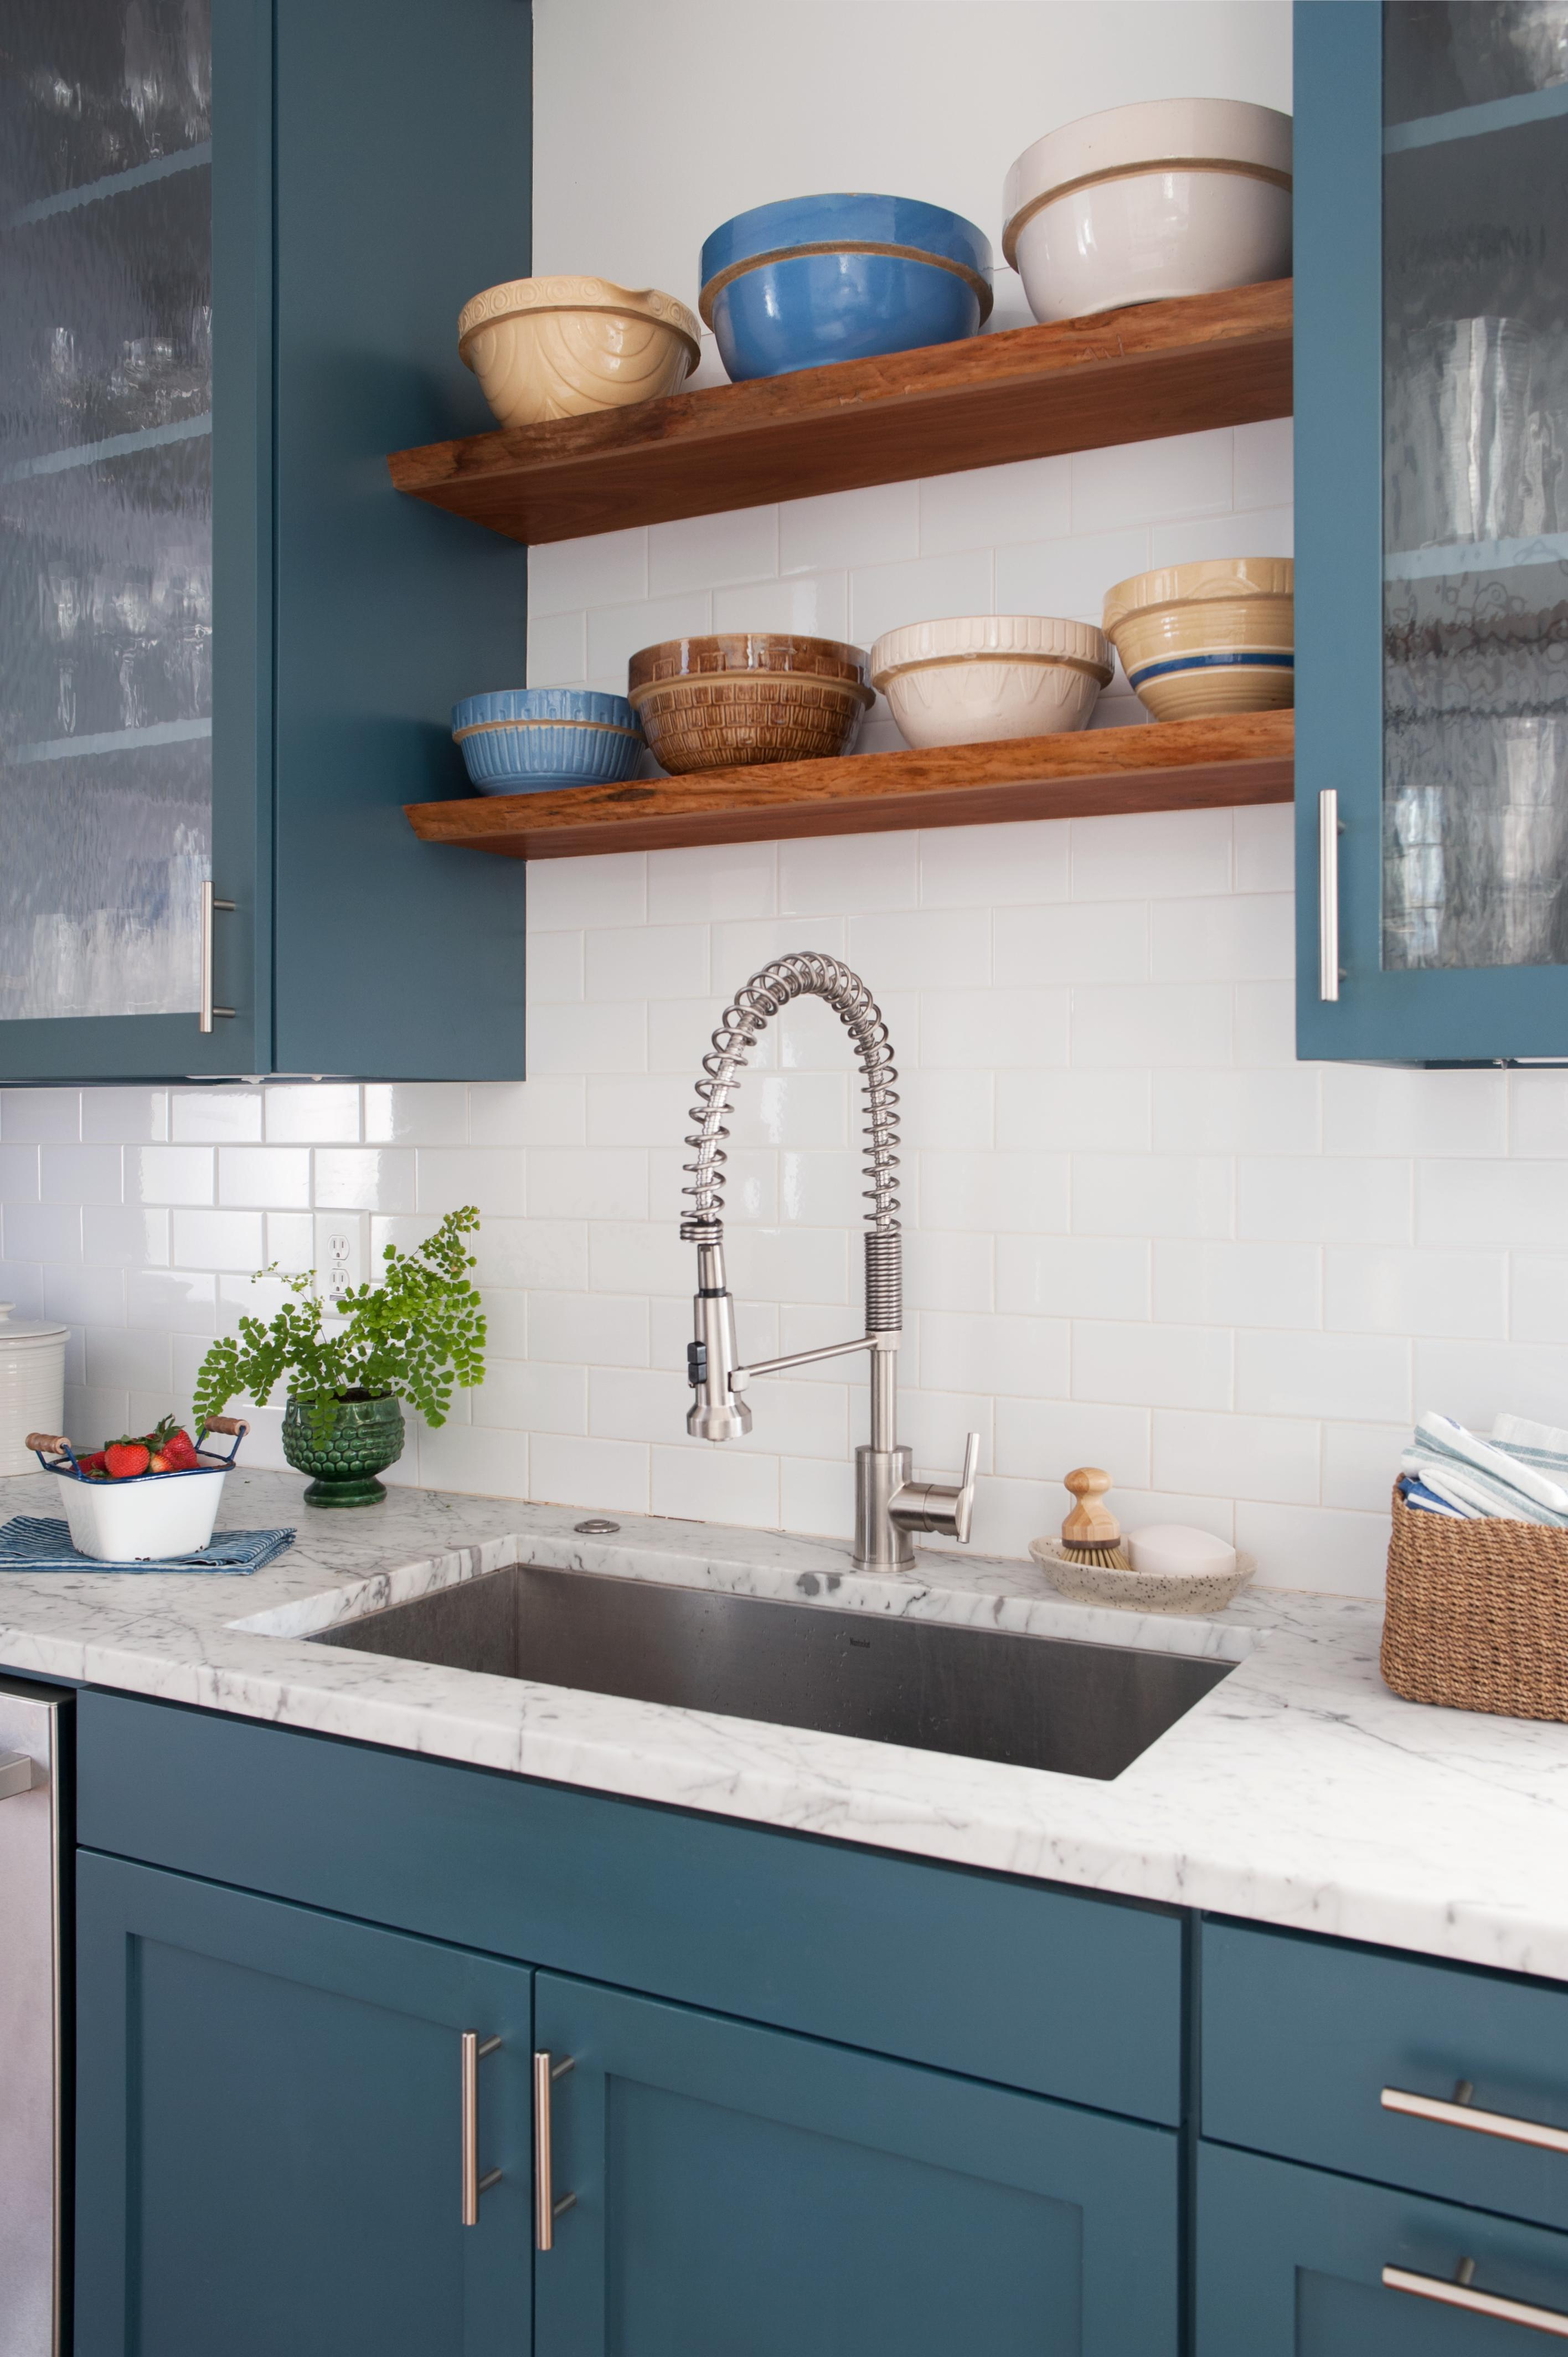 How To Clean Kitchen And Bathroom Countertops Better